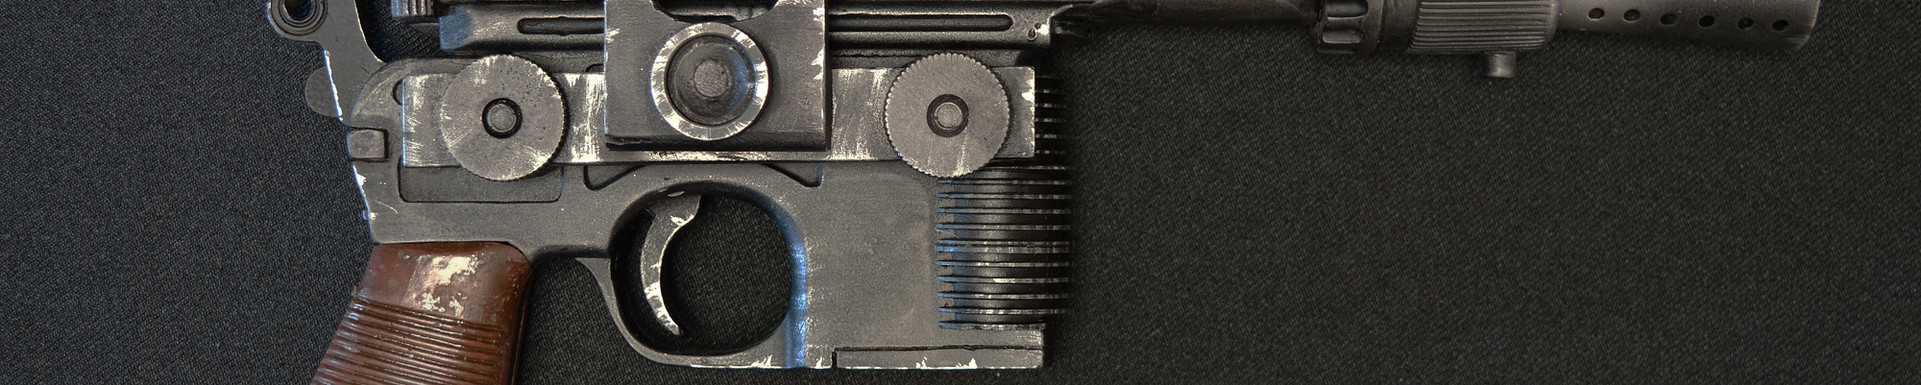 Han Solo ANH DL-44 Blaster